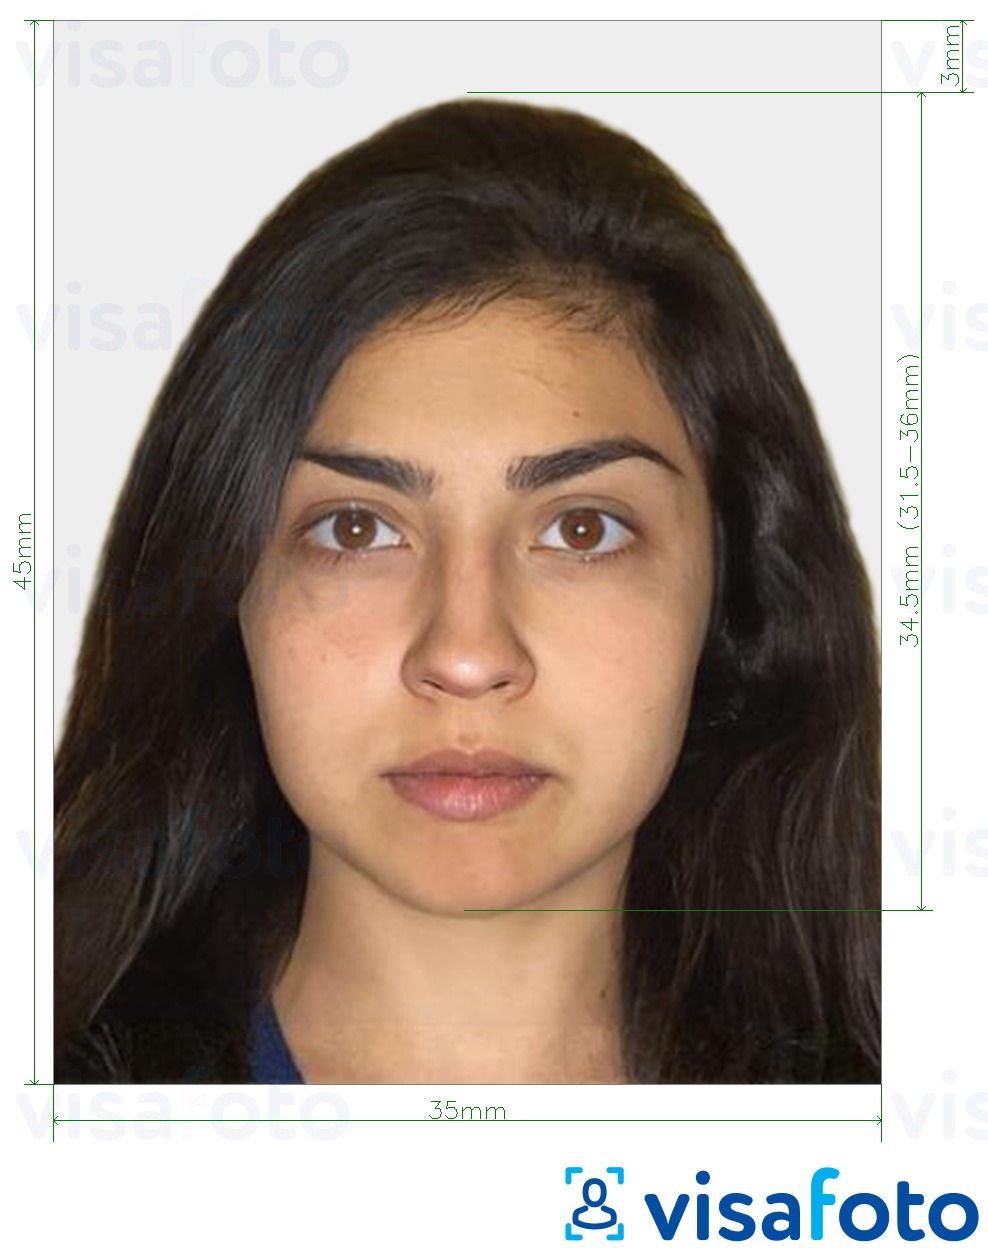 Example of photo for Armenia visa 35x45 mm (3.5x4.5 cm) with exact size specification